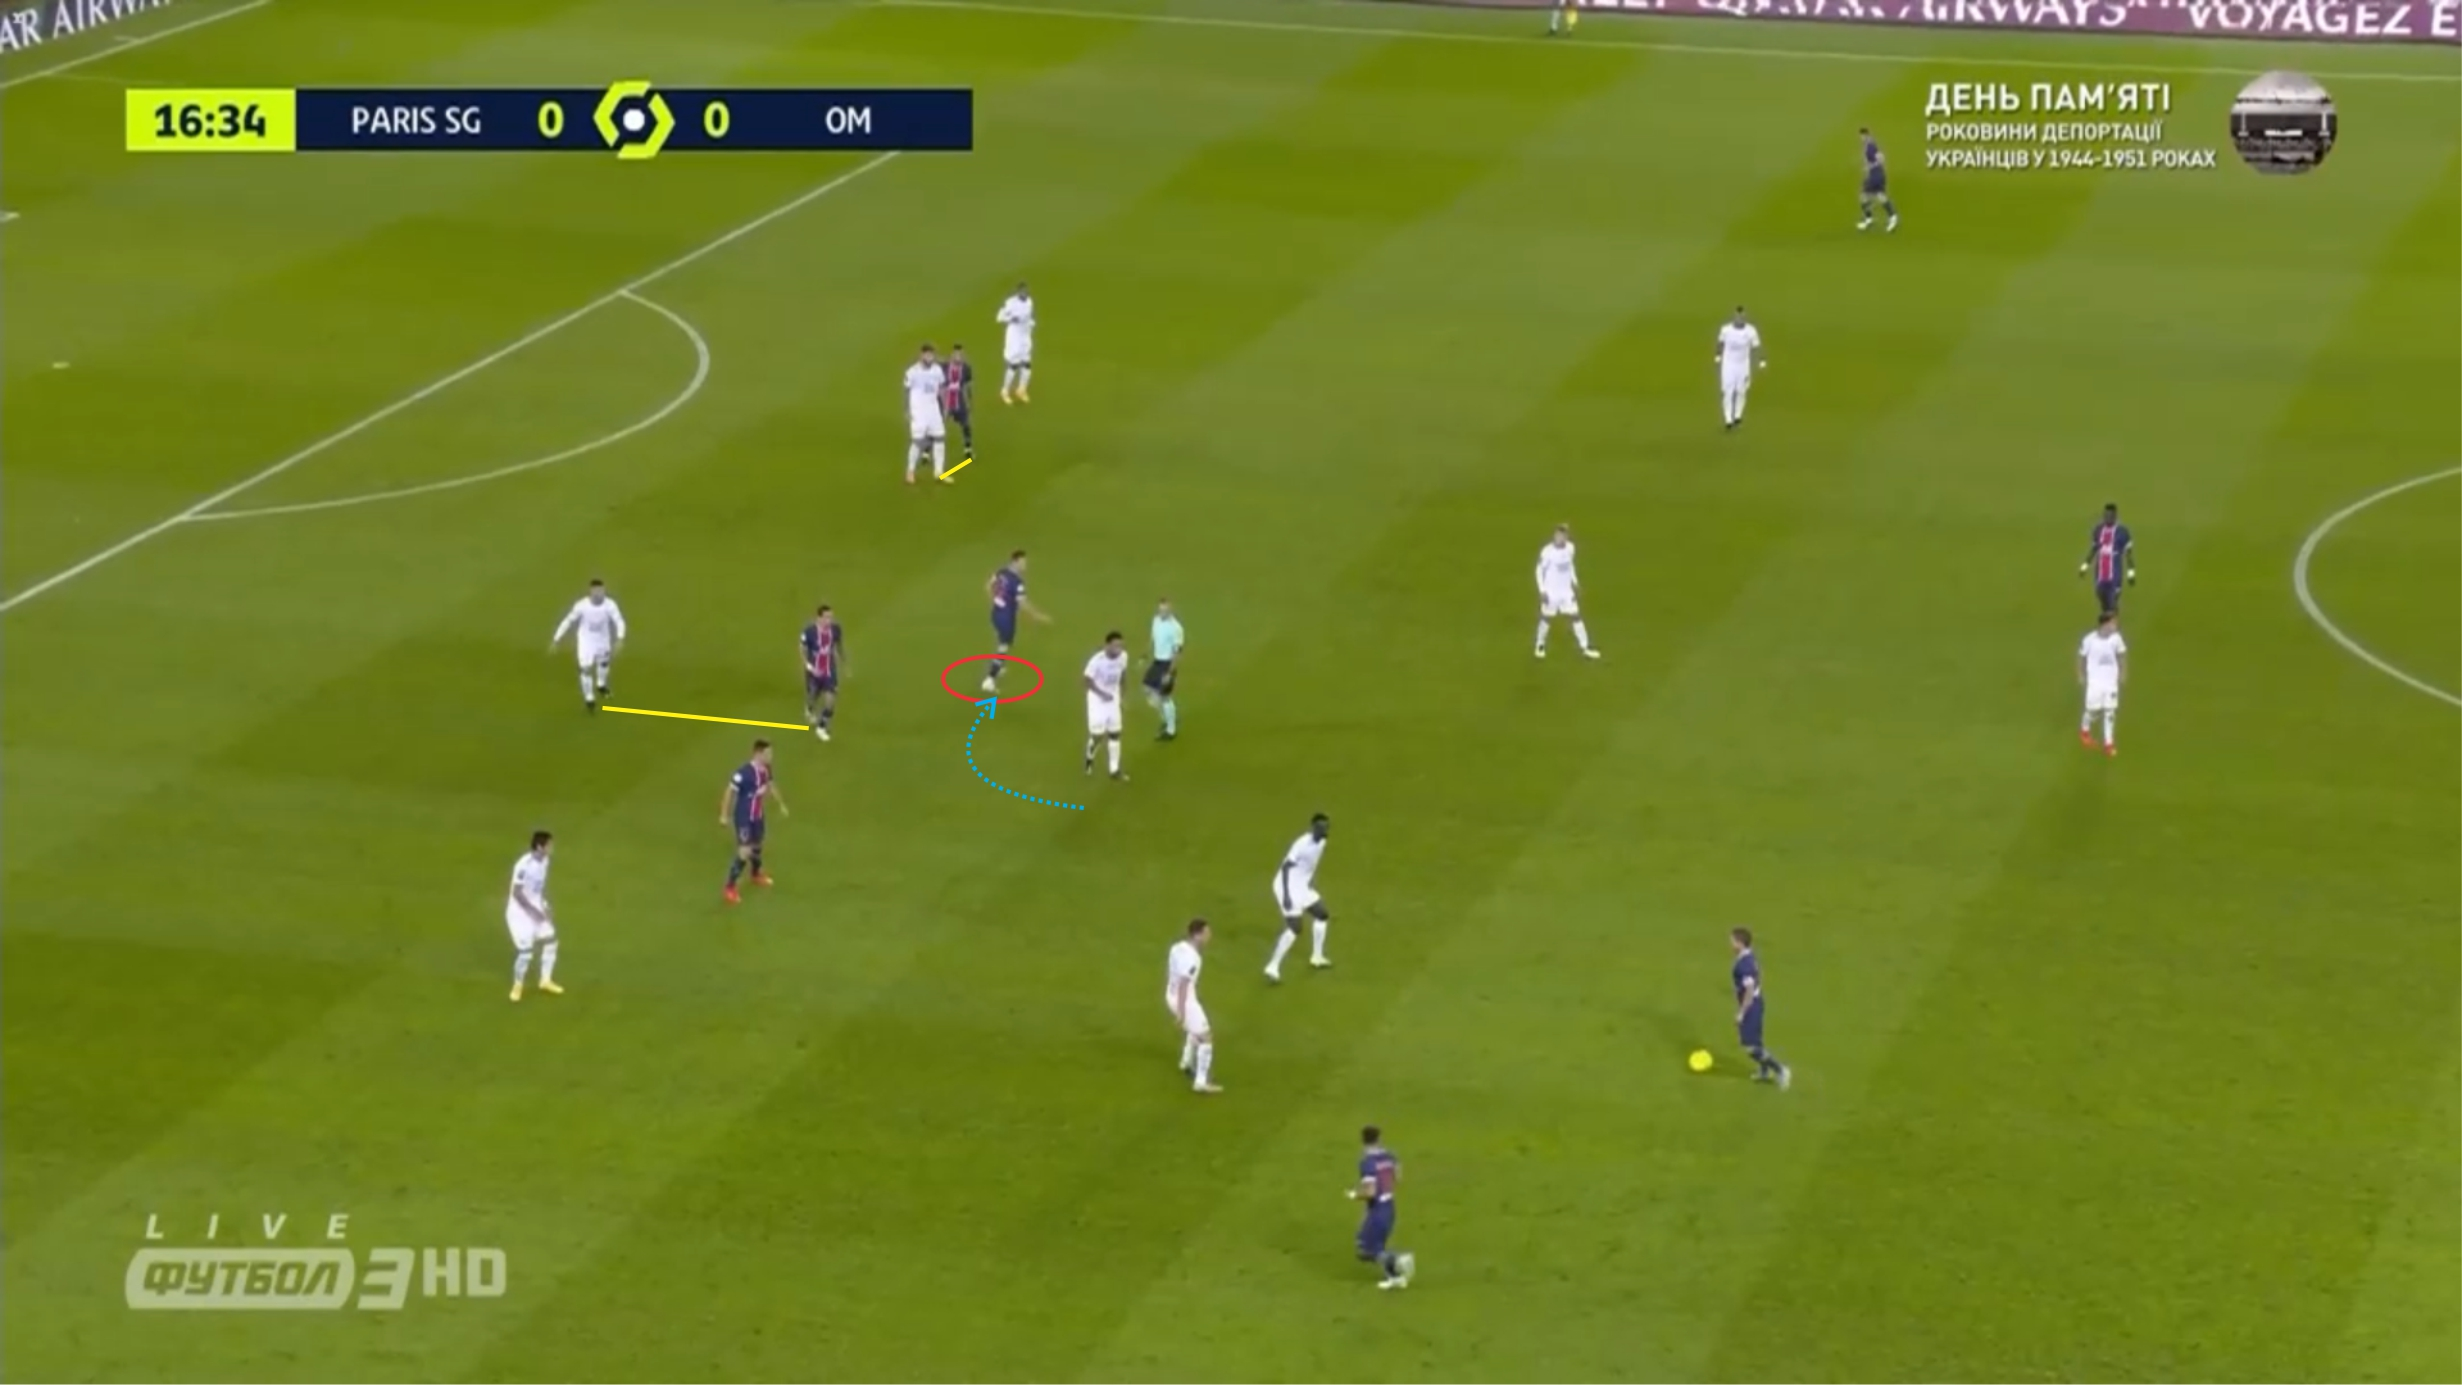 Ligue 1 2020/21: Marseille vs Lille - tactical analysis tactics